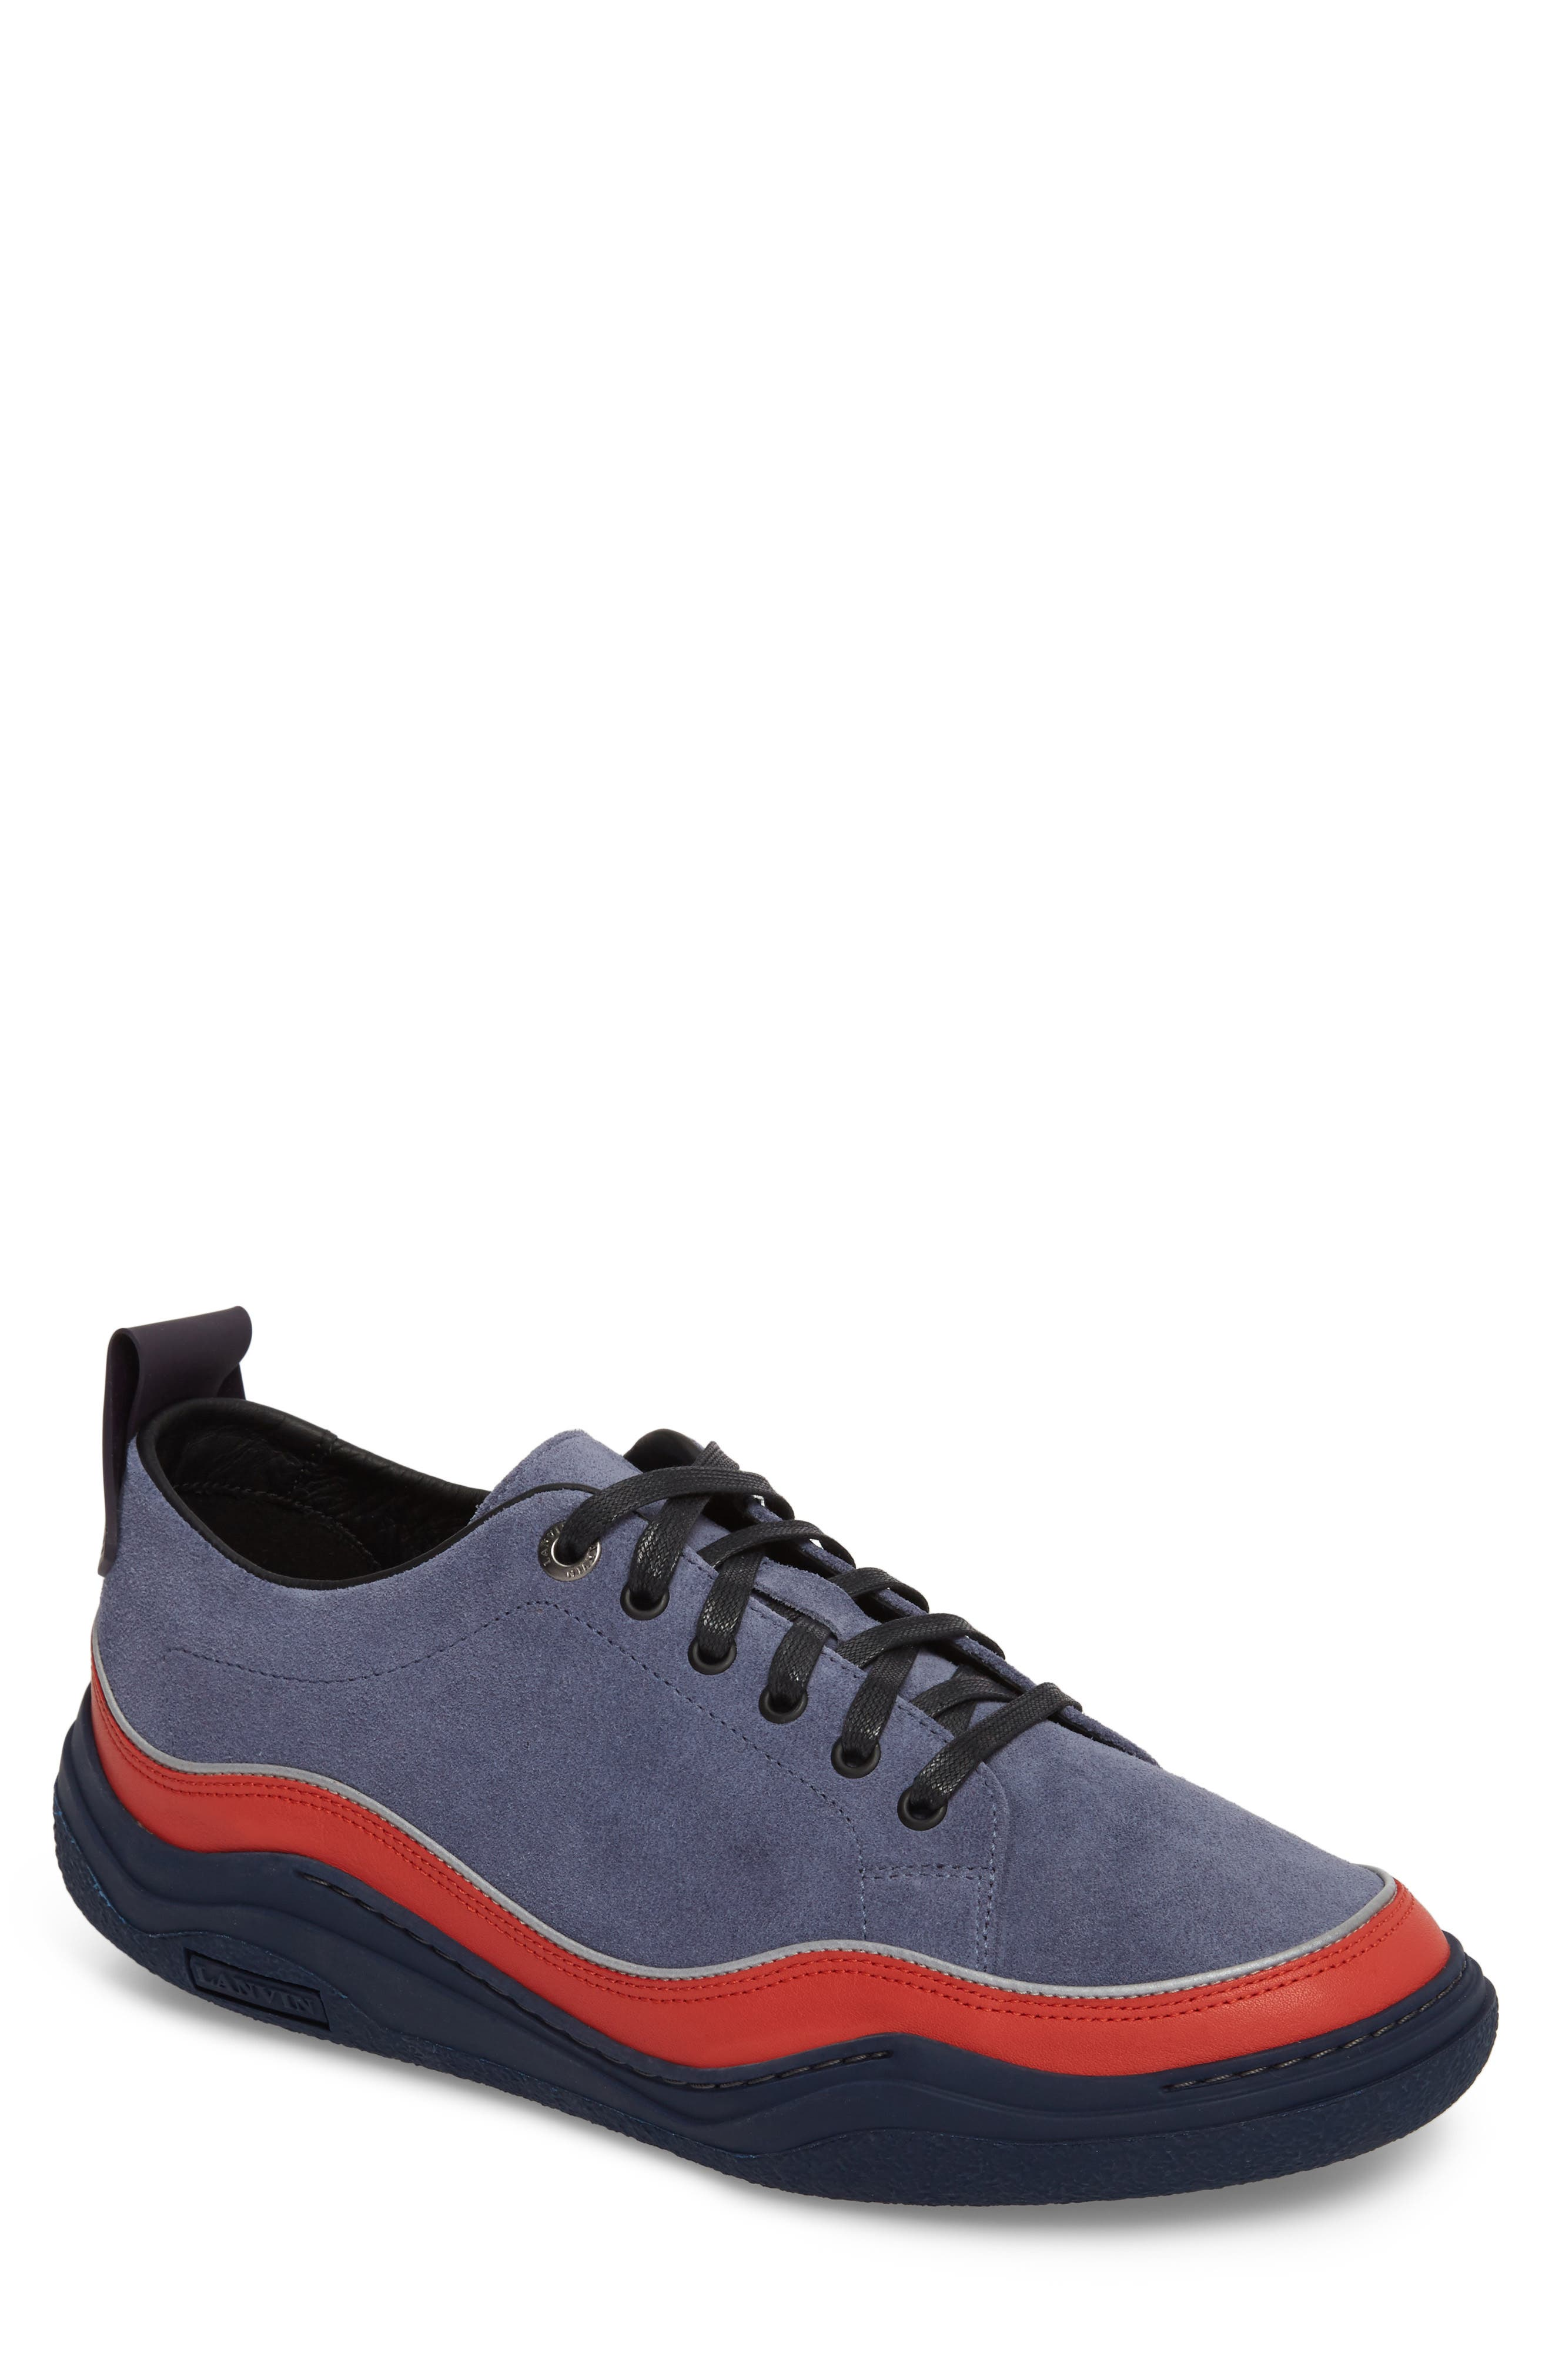 LANVIN,                             Diving Sneaker,                             Main thumbnail 1, color,                             450